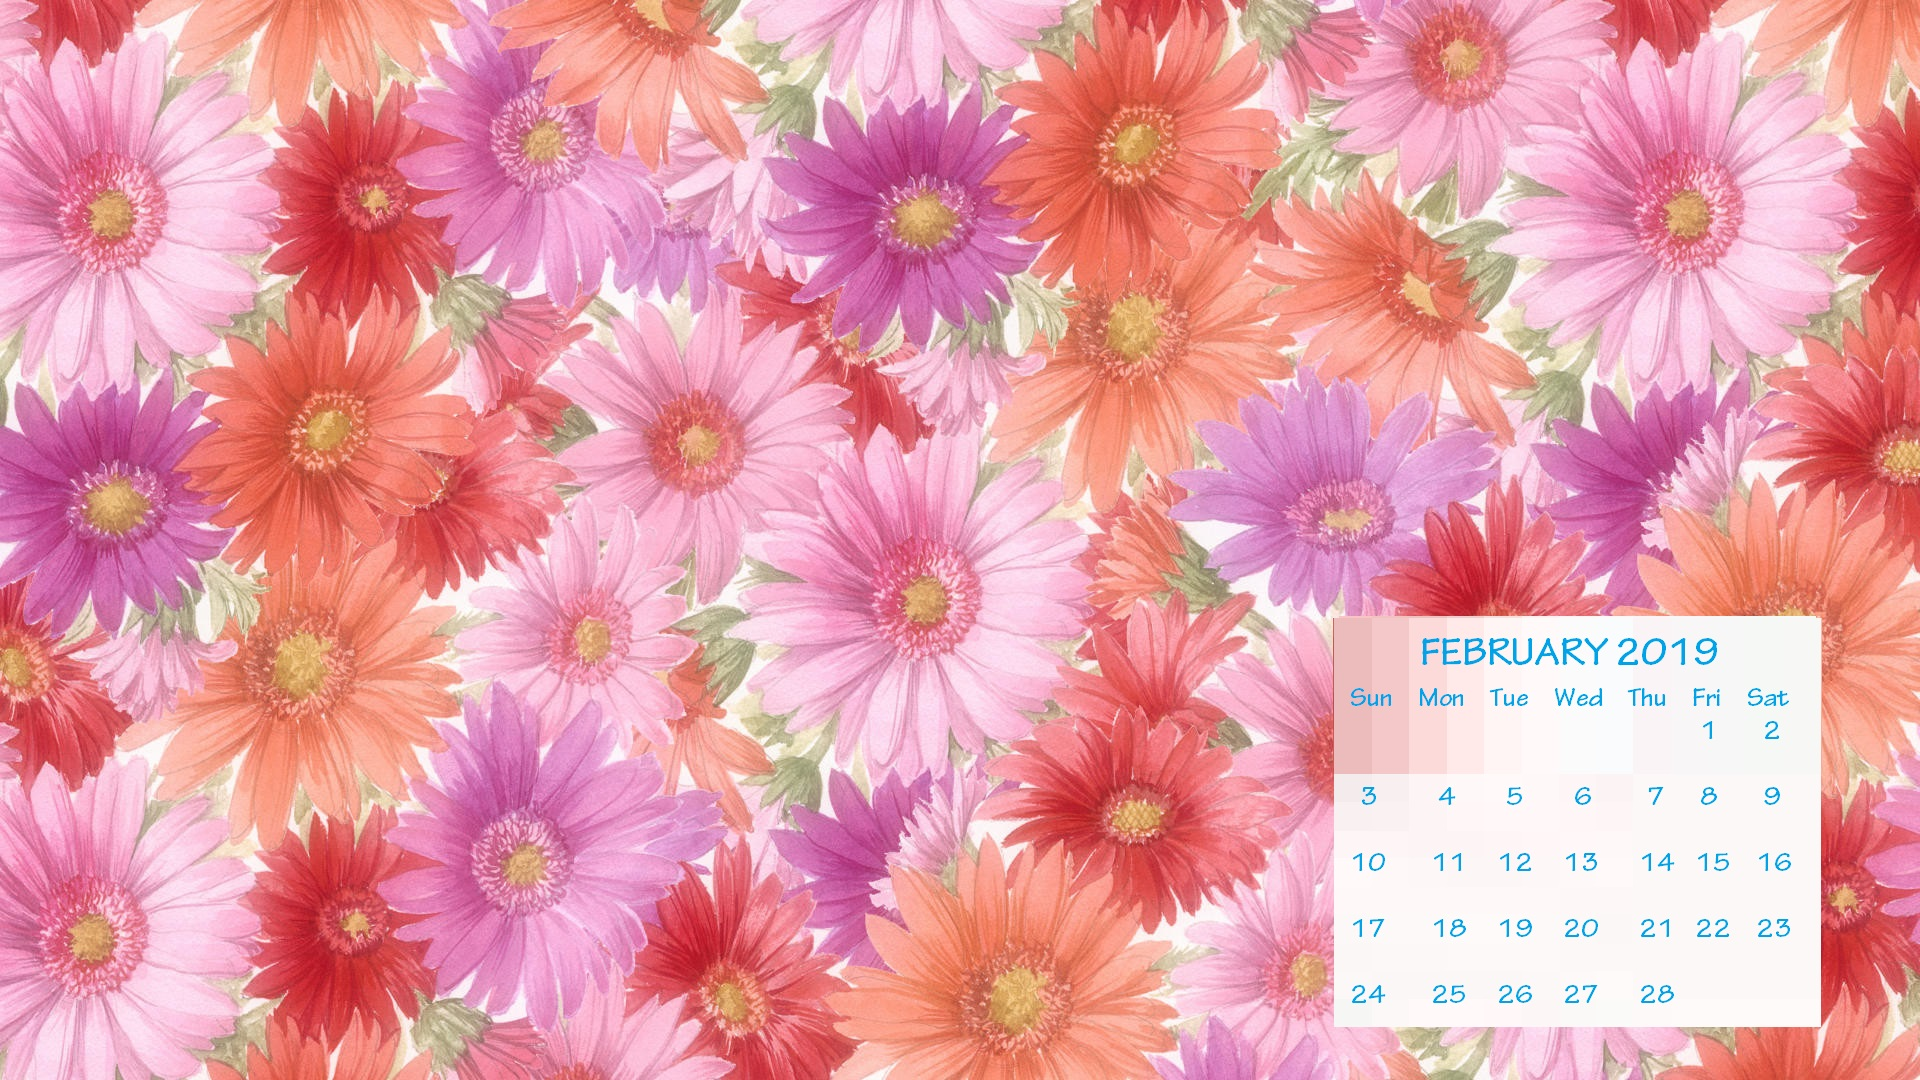 February 2019 HD Calendar Wallpaper